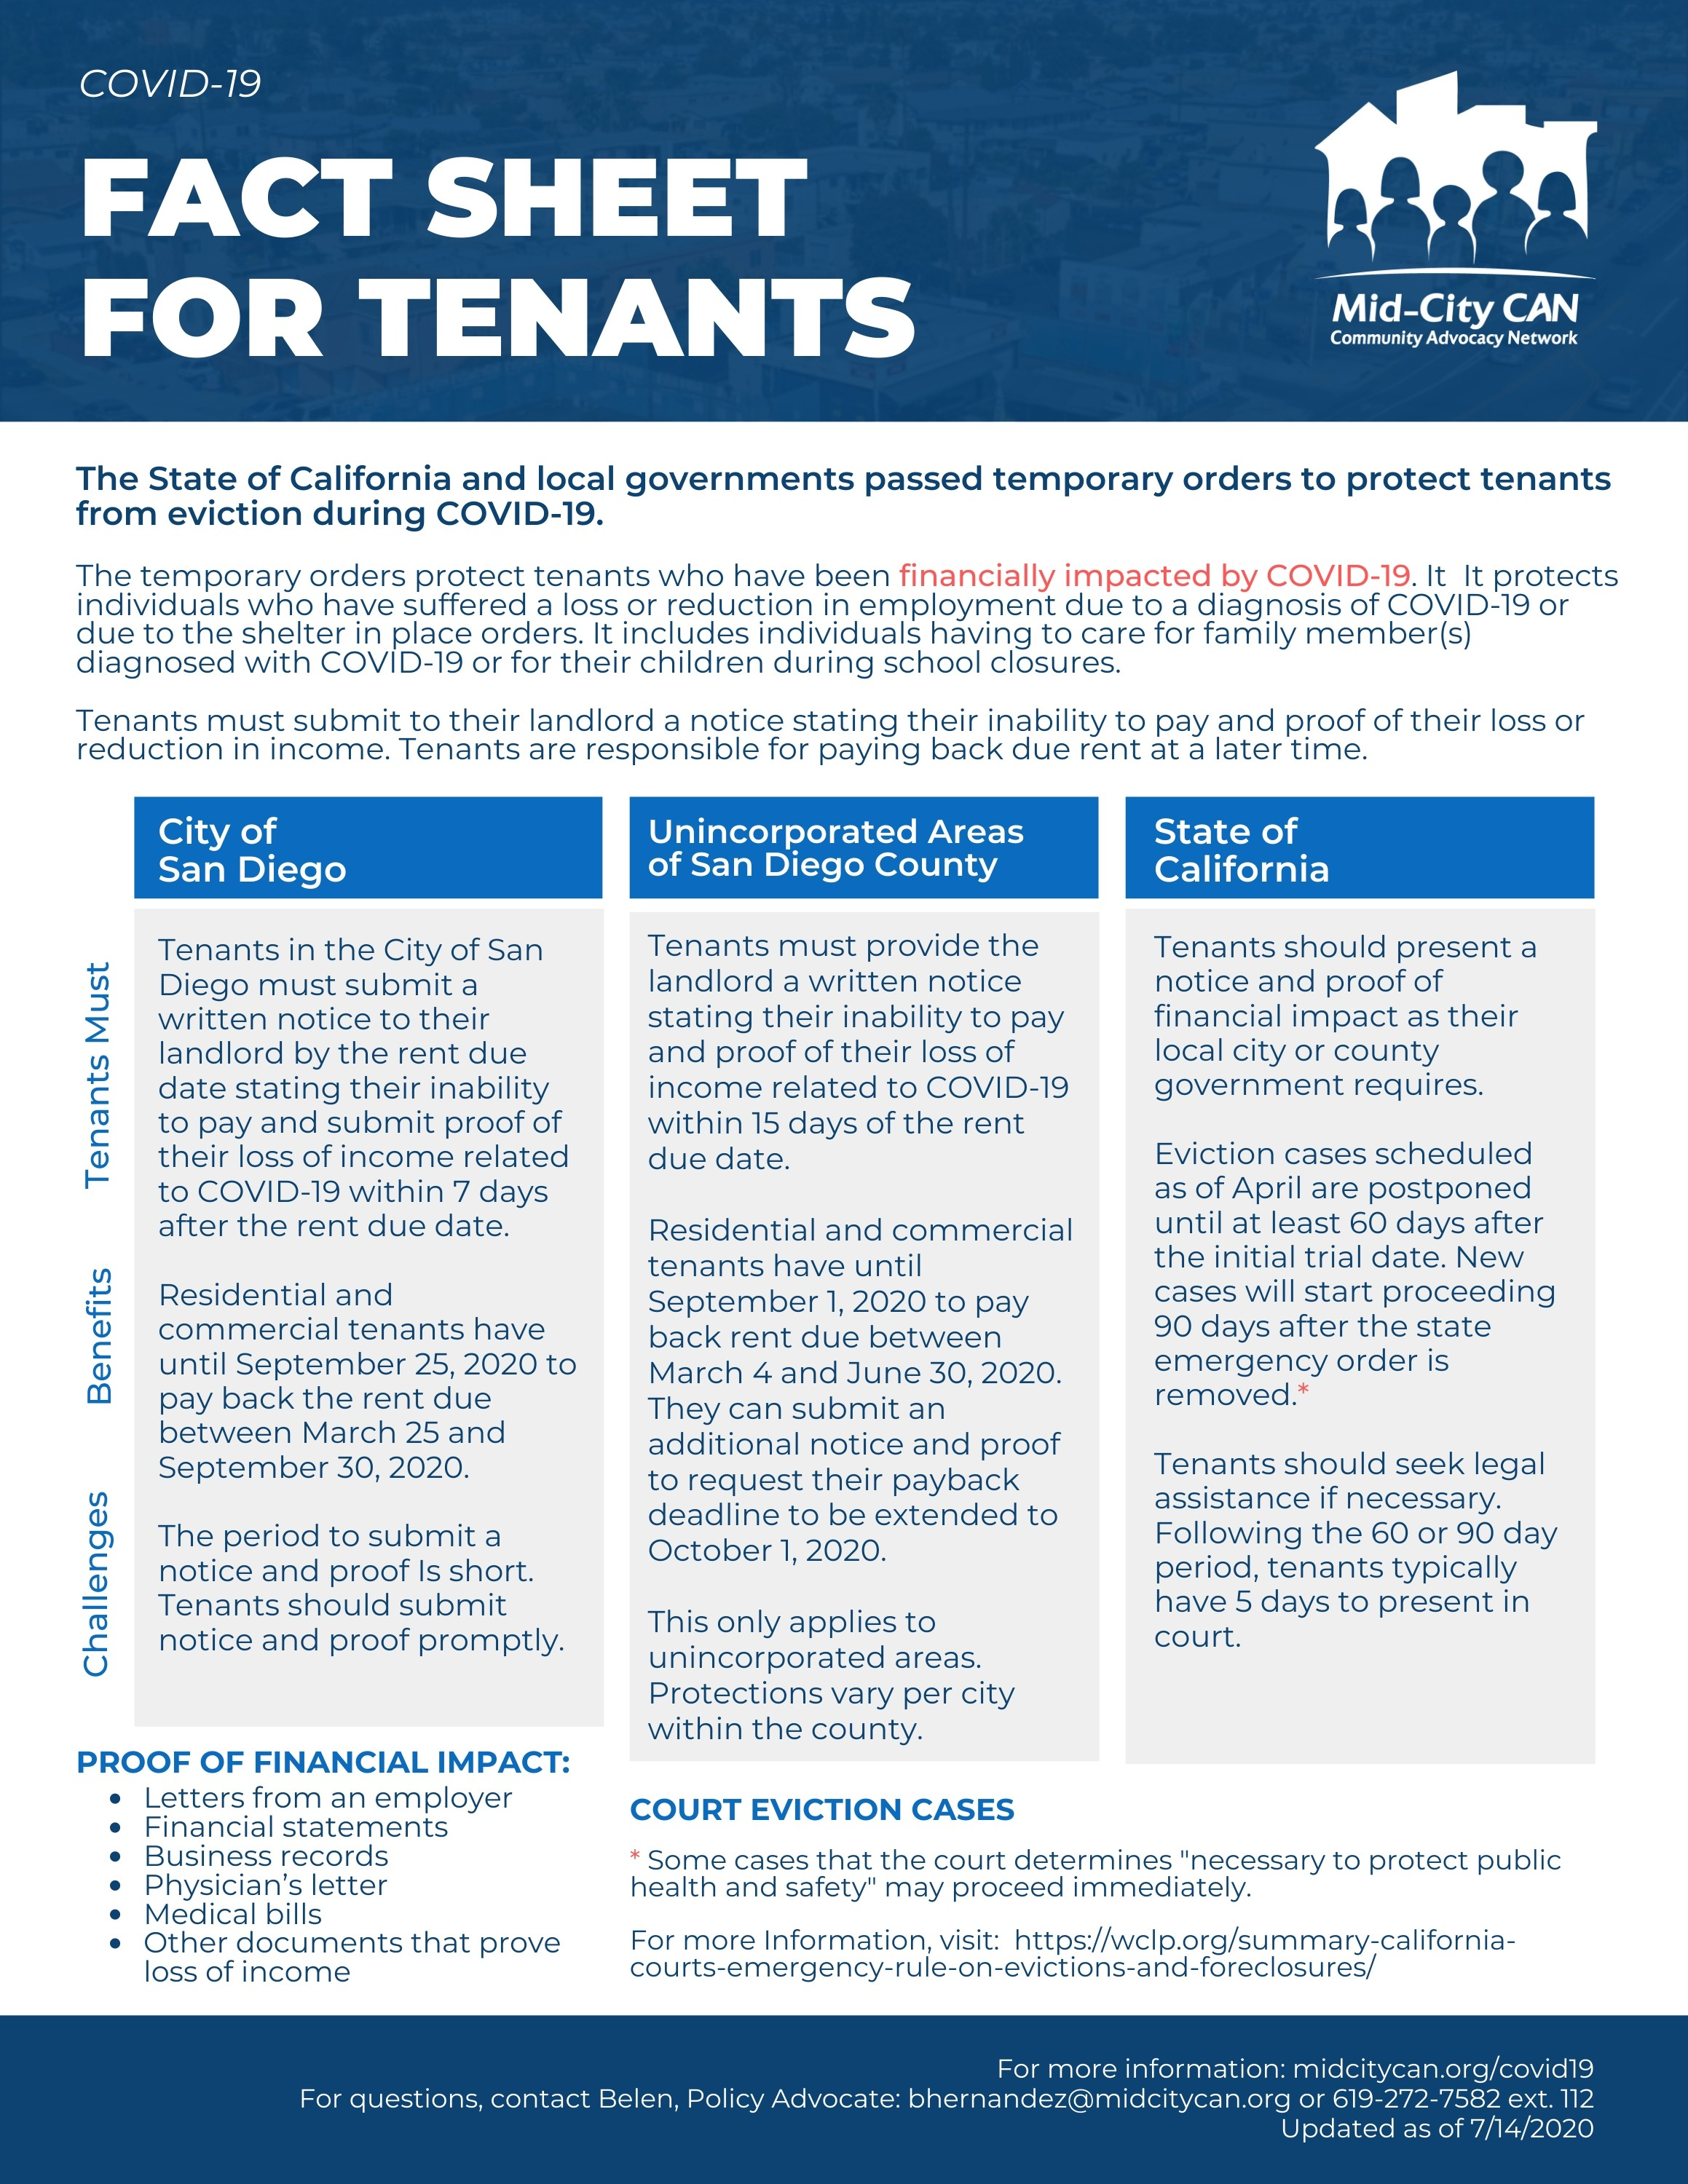 0714_Tenants_factsheet_eng.jpg